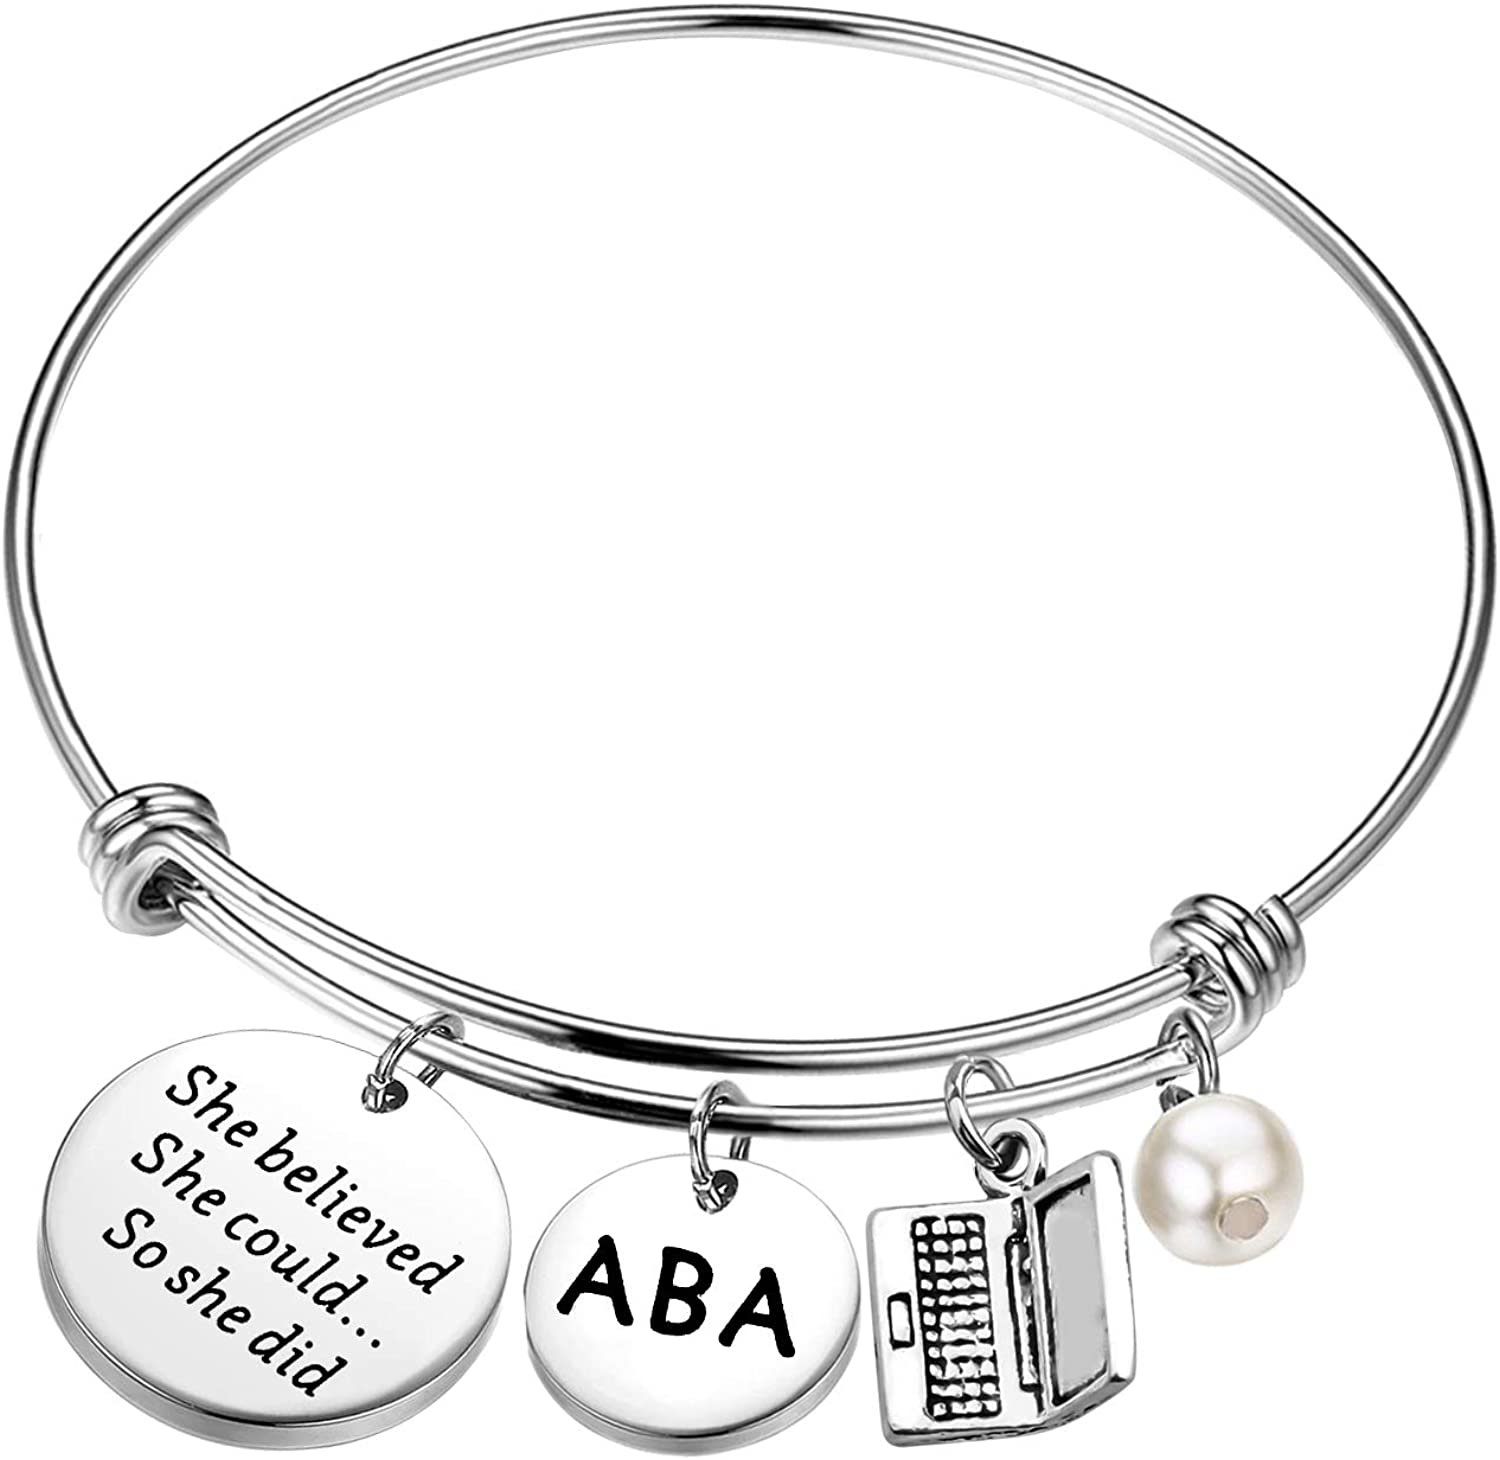 BLEOUK ABA Therapist Gift Behavior Therapist Gift She Believed She Could So She Did ABA Therapist Graduation Gift Therapy Thank You Gift